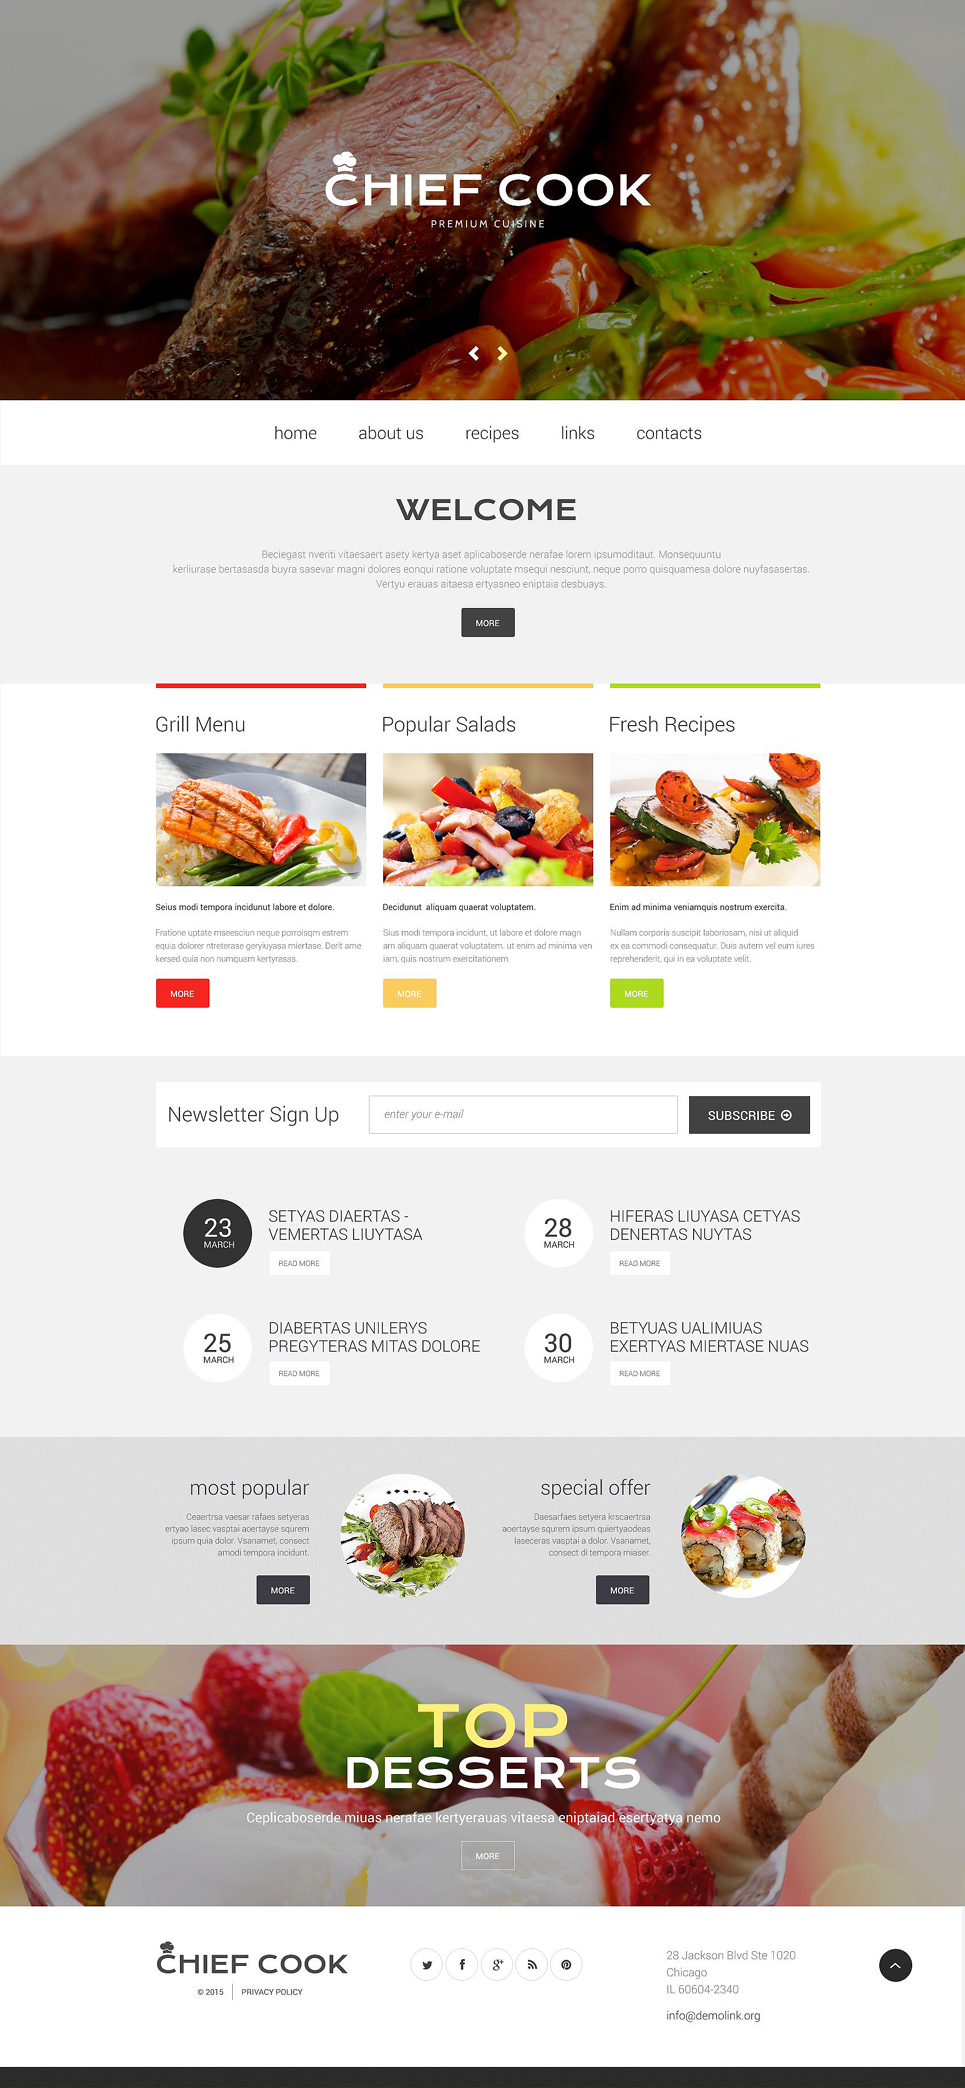 Chef Cook Site template illustration image